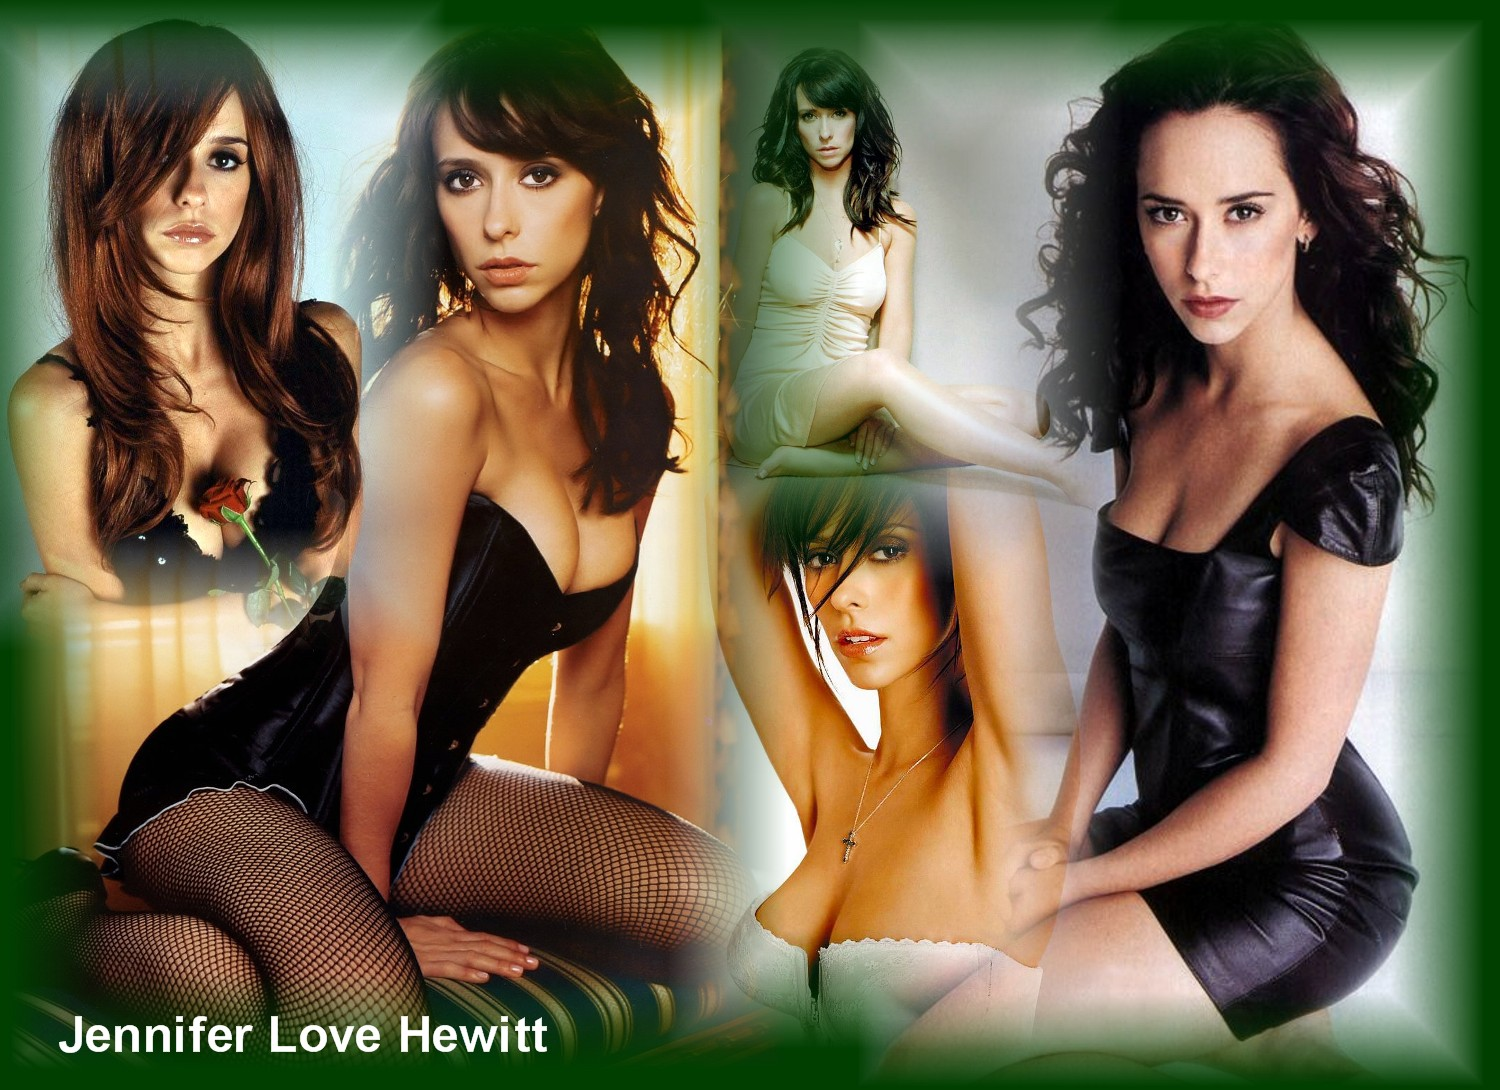 Jennifer Love Hewitt ghost whisperer 68282 1500 1090 Chat with Natalie Nice here!